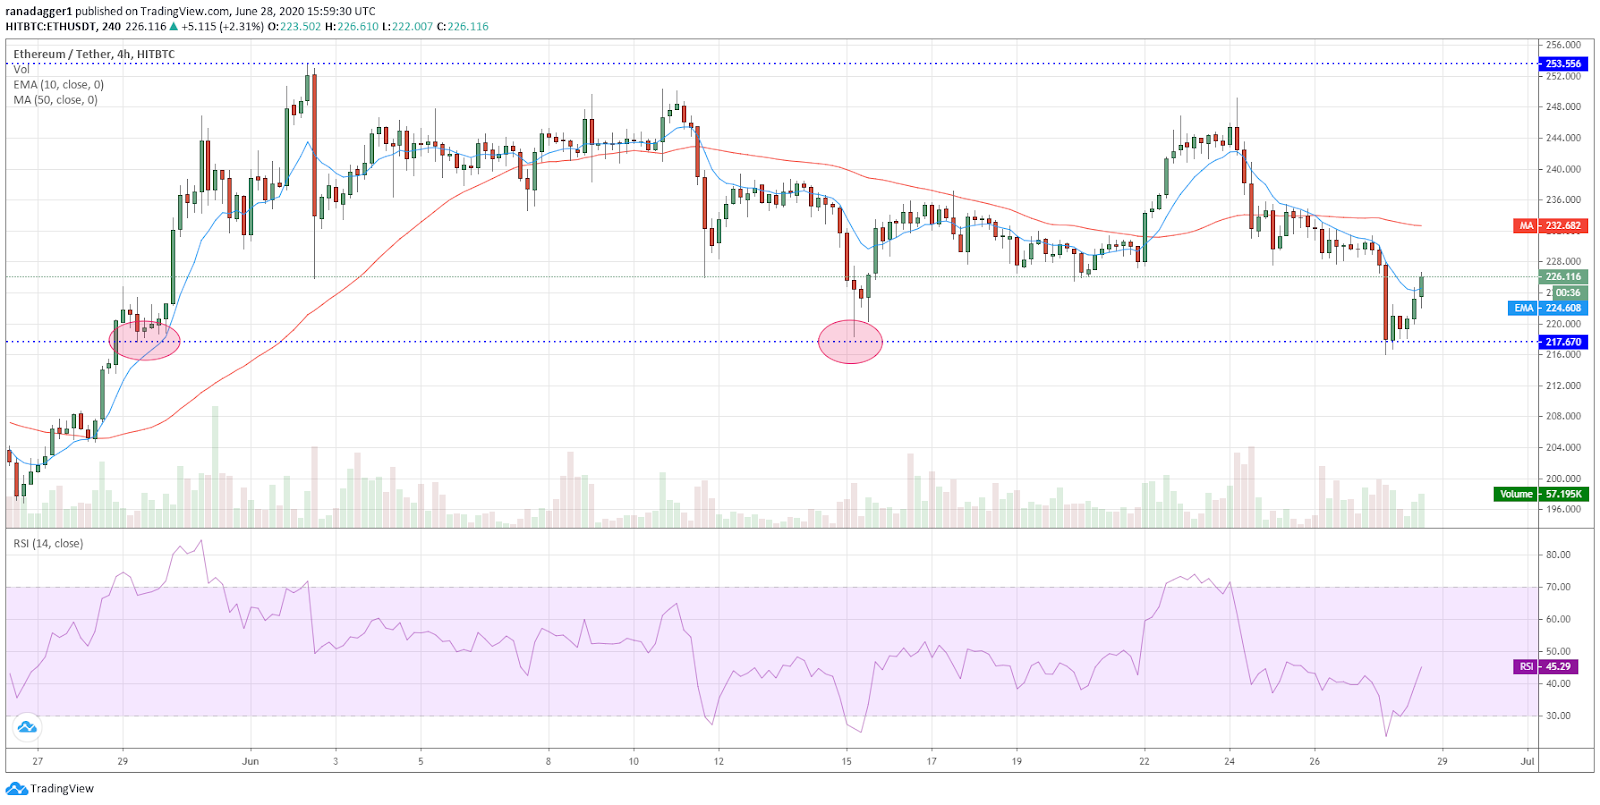 ETH/USD 4-hour chart